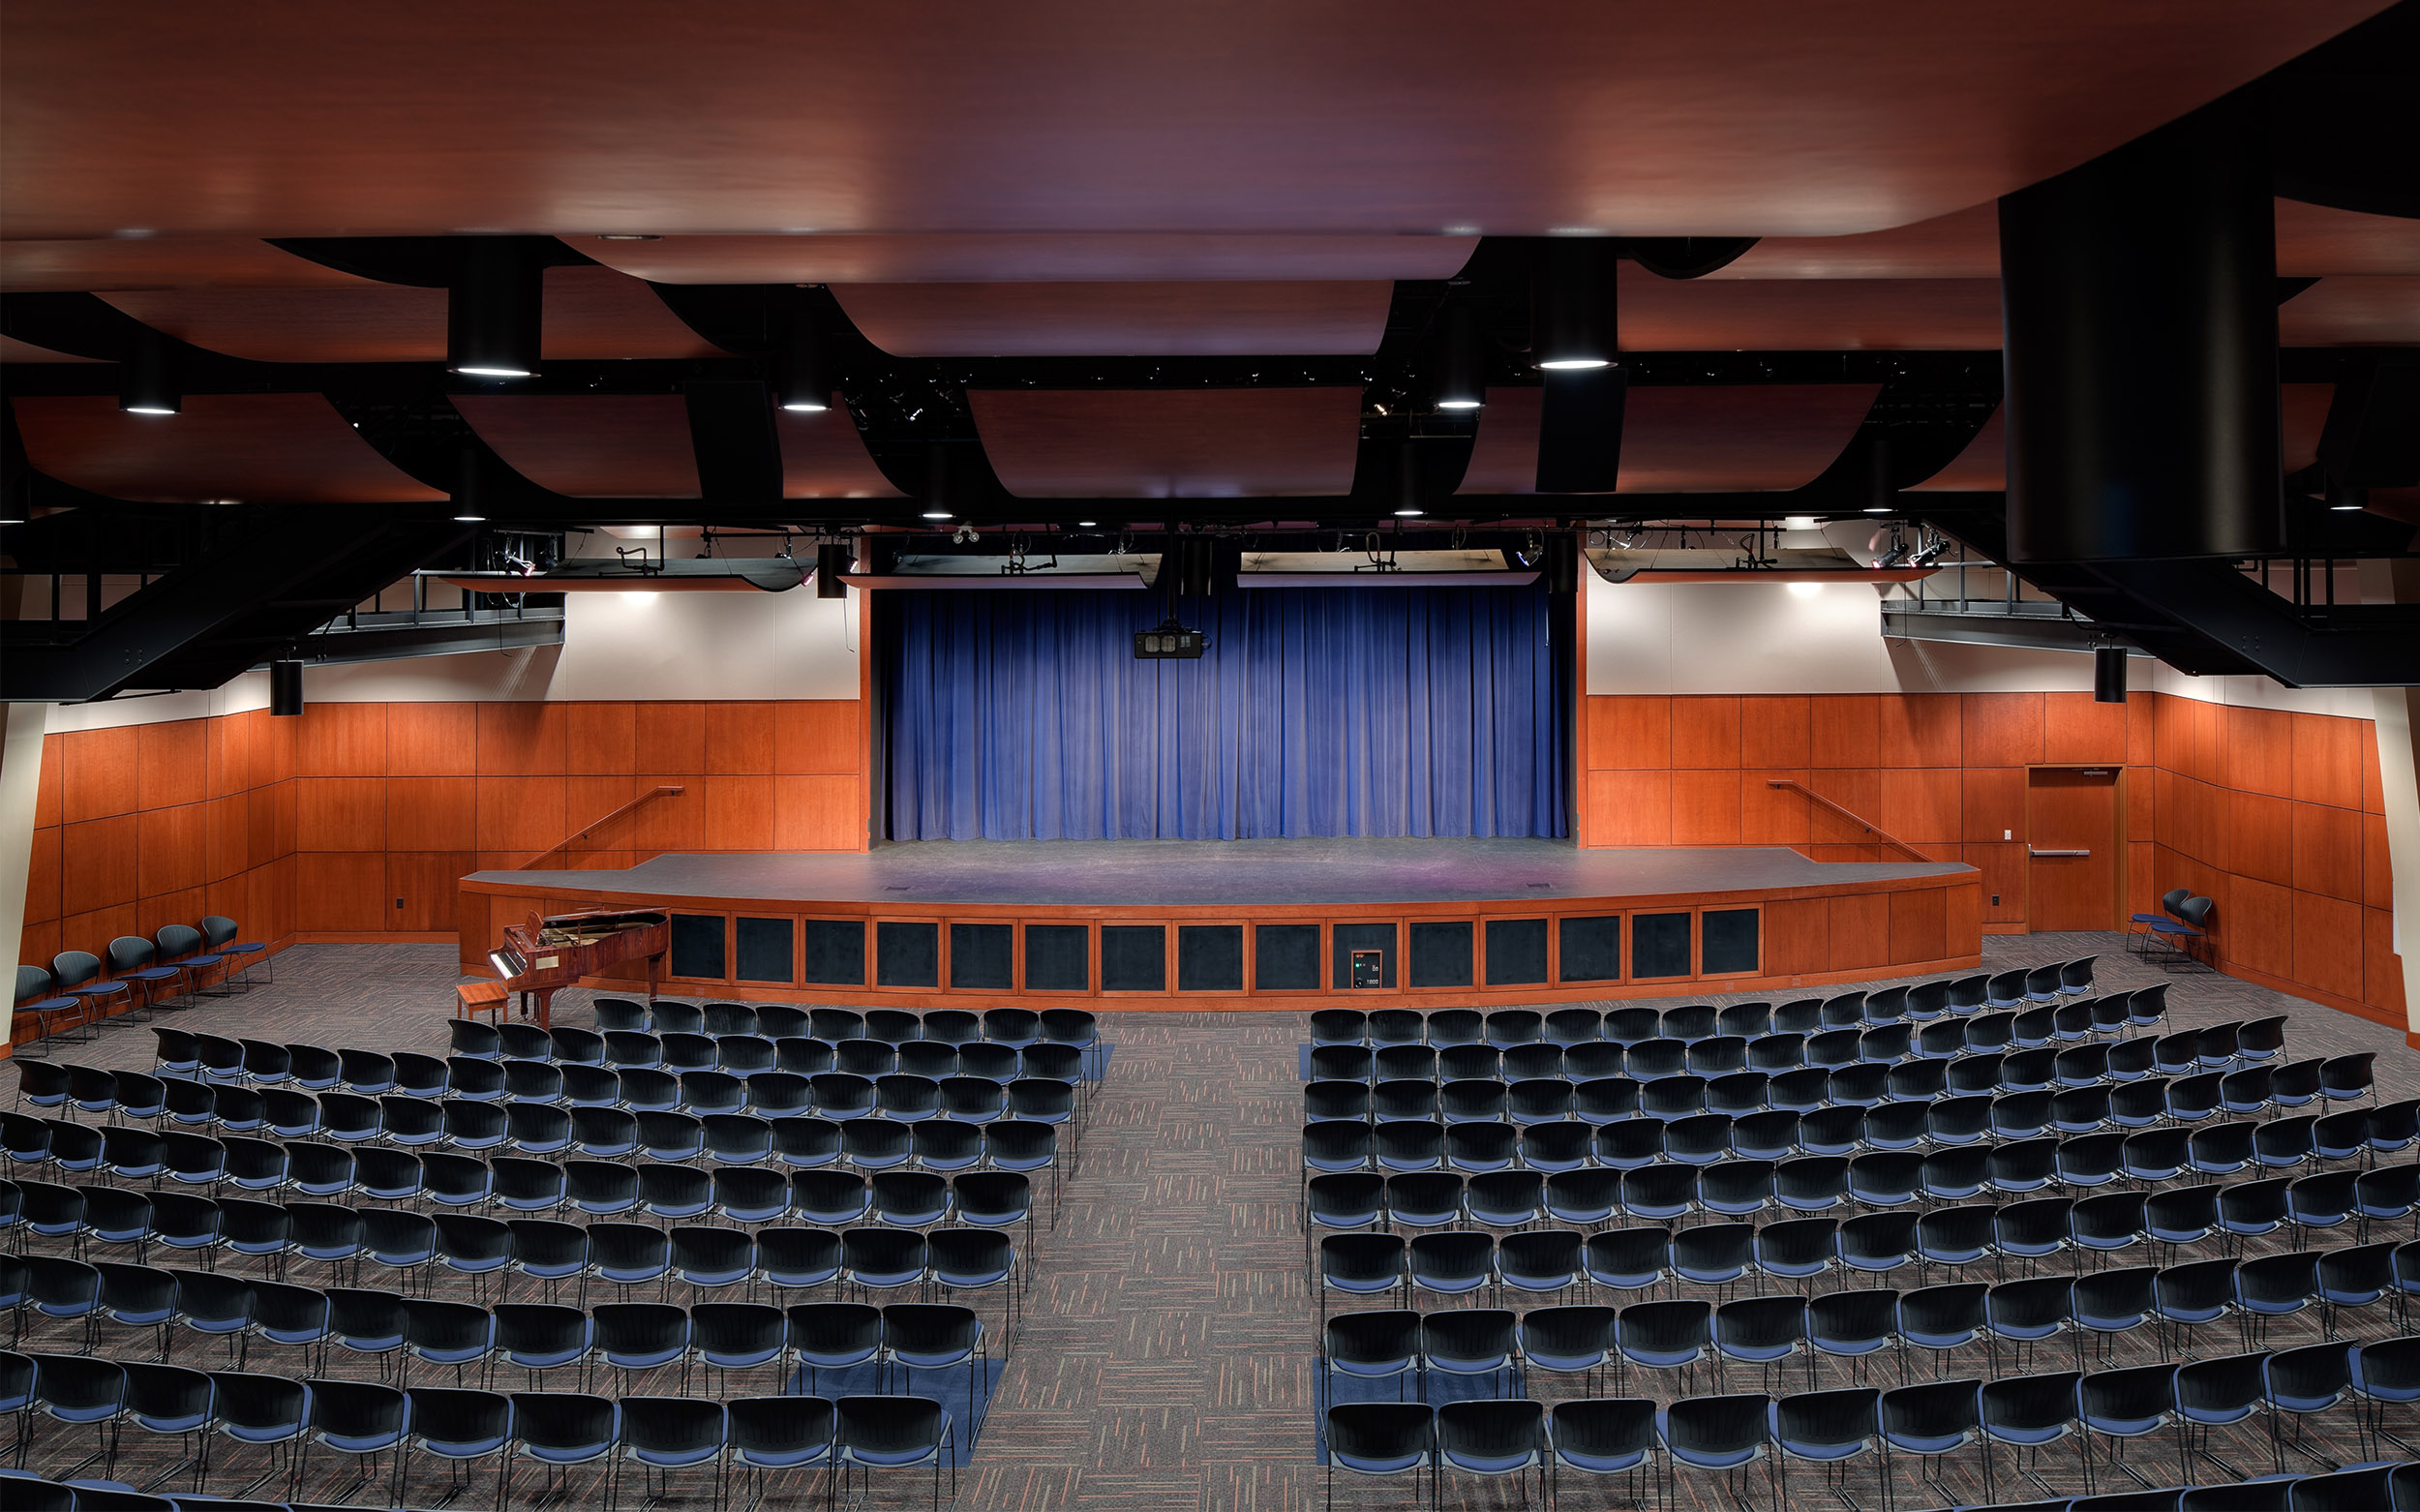 Cape Fear Academy Performing Arts